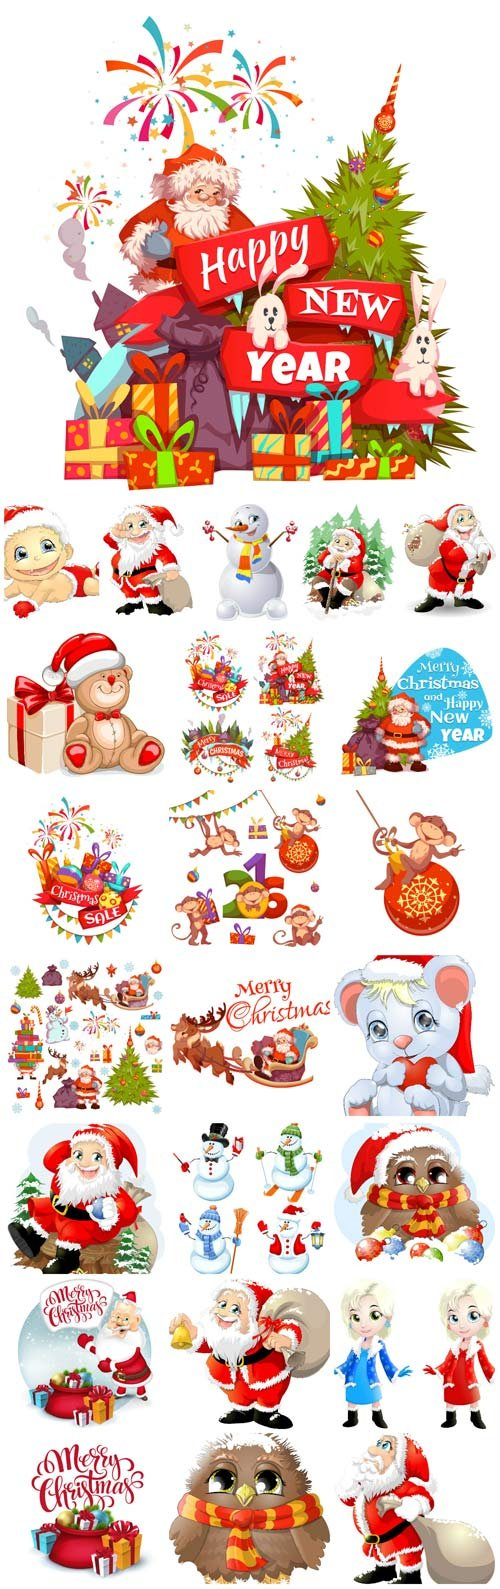 Merry Christmas, New Year vector, Santa Claus, Christmas tree, garland, winter